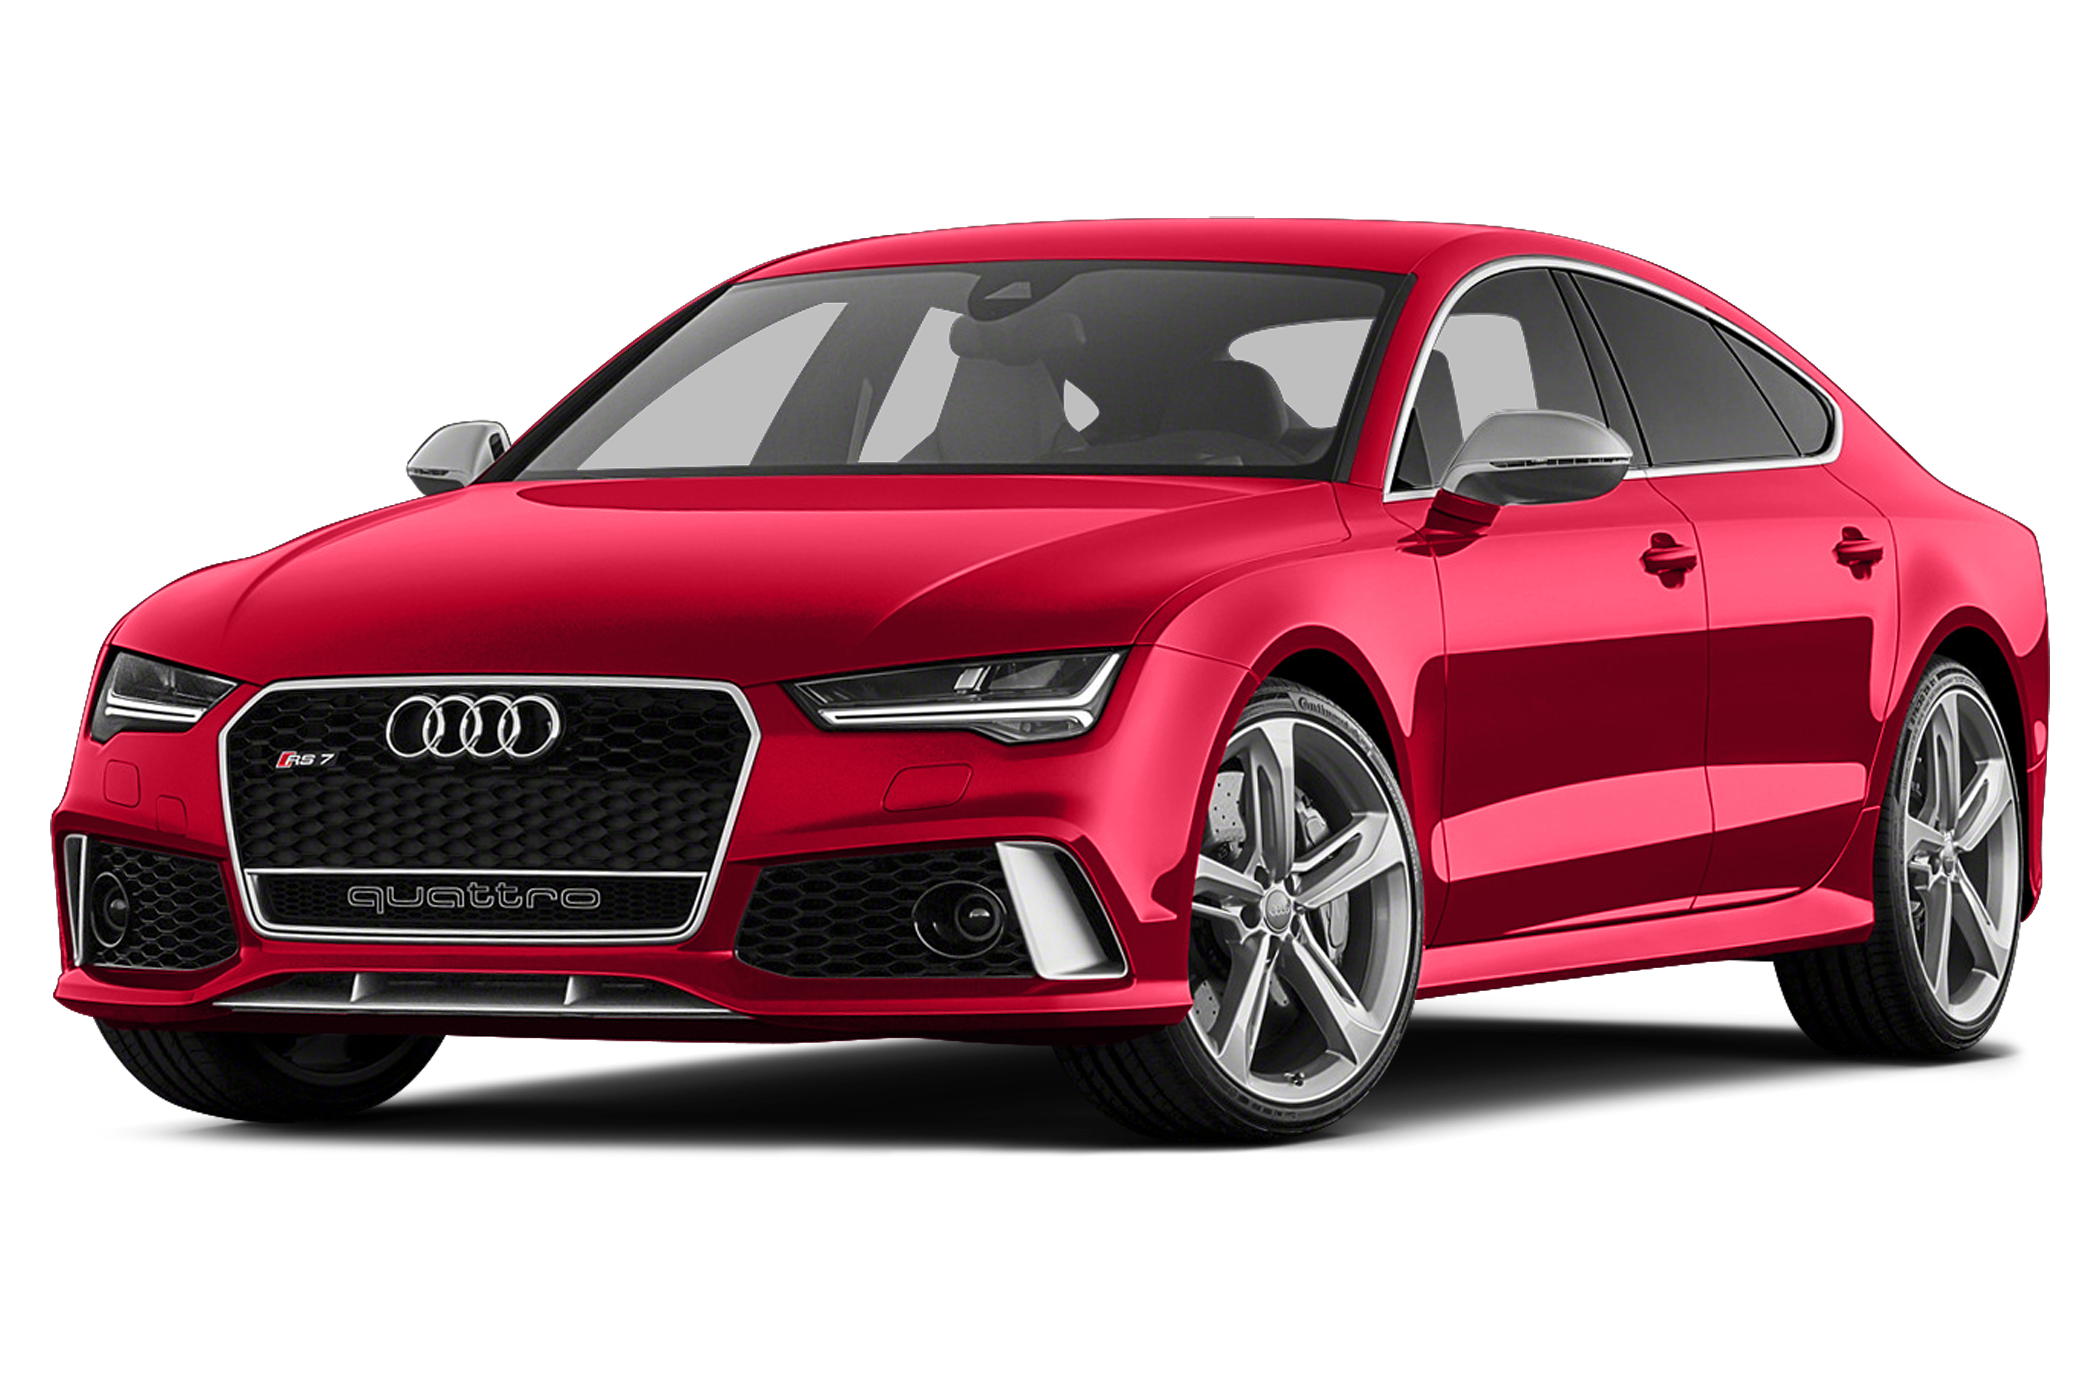 2016 Audi RS 7 Png image #45311